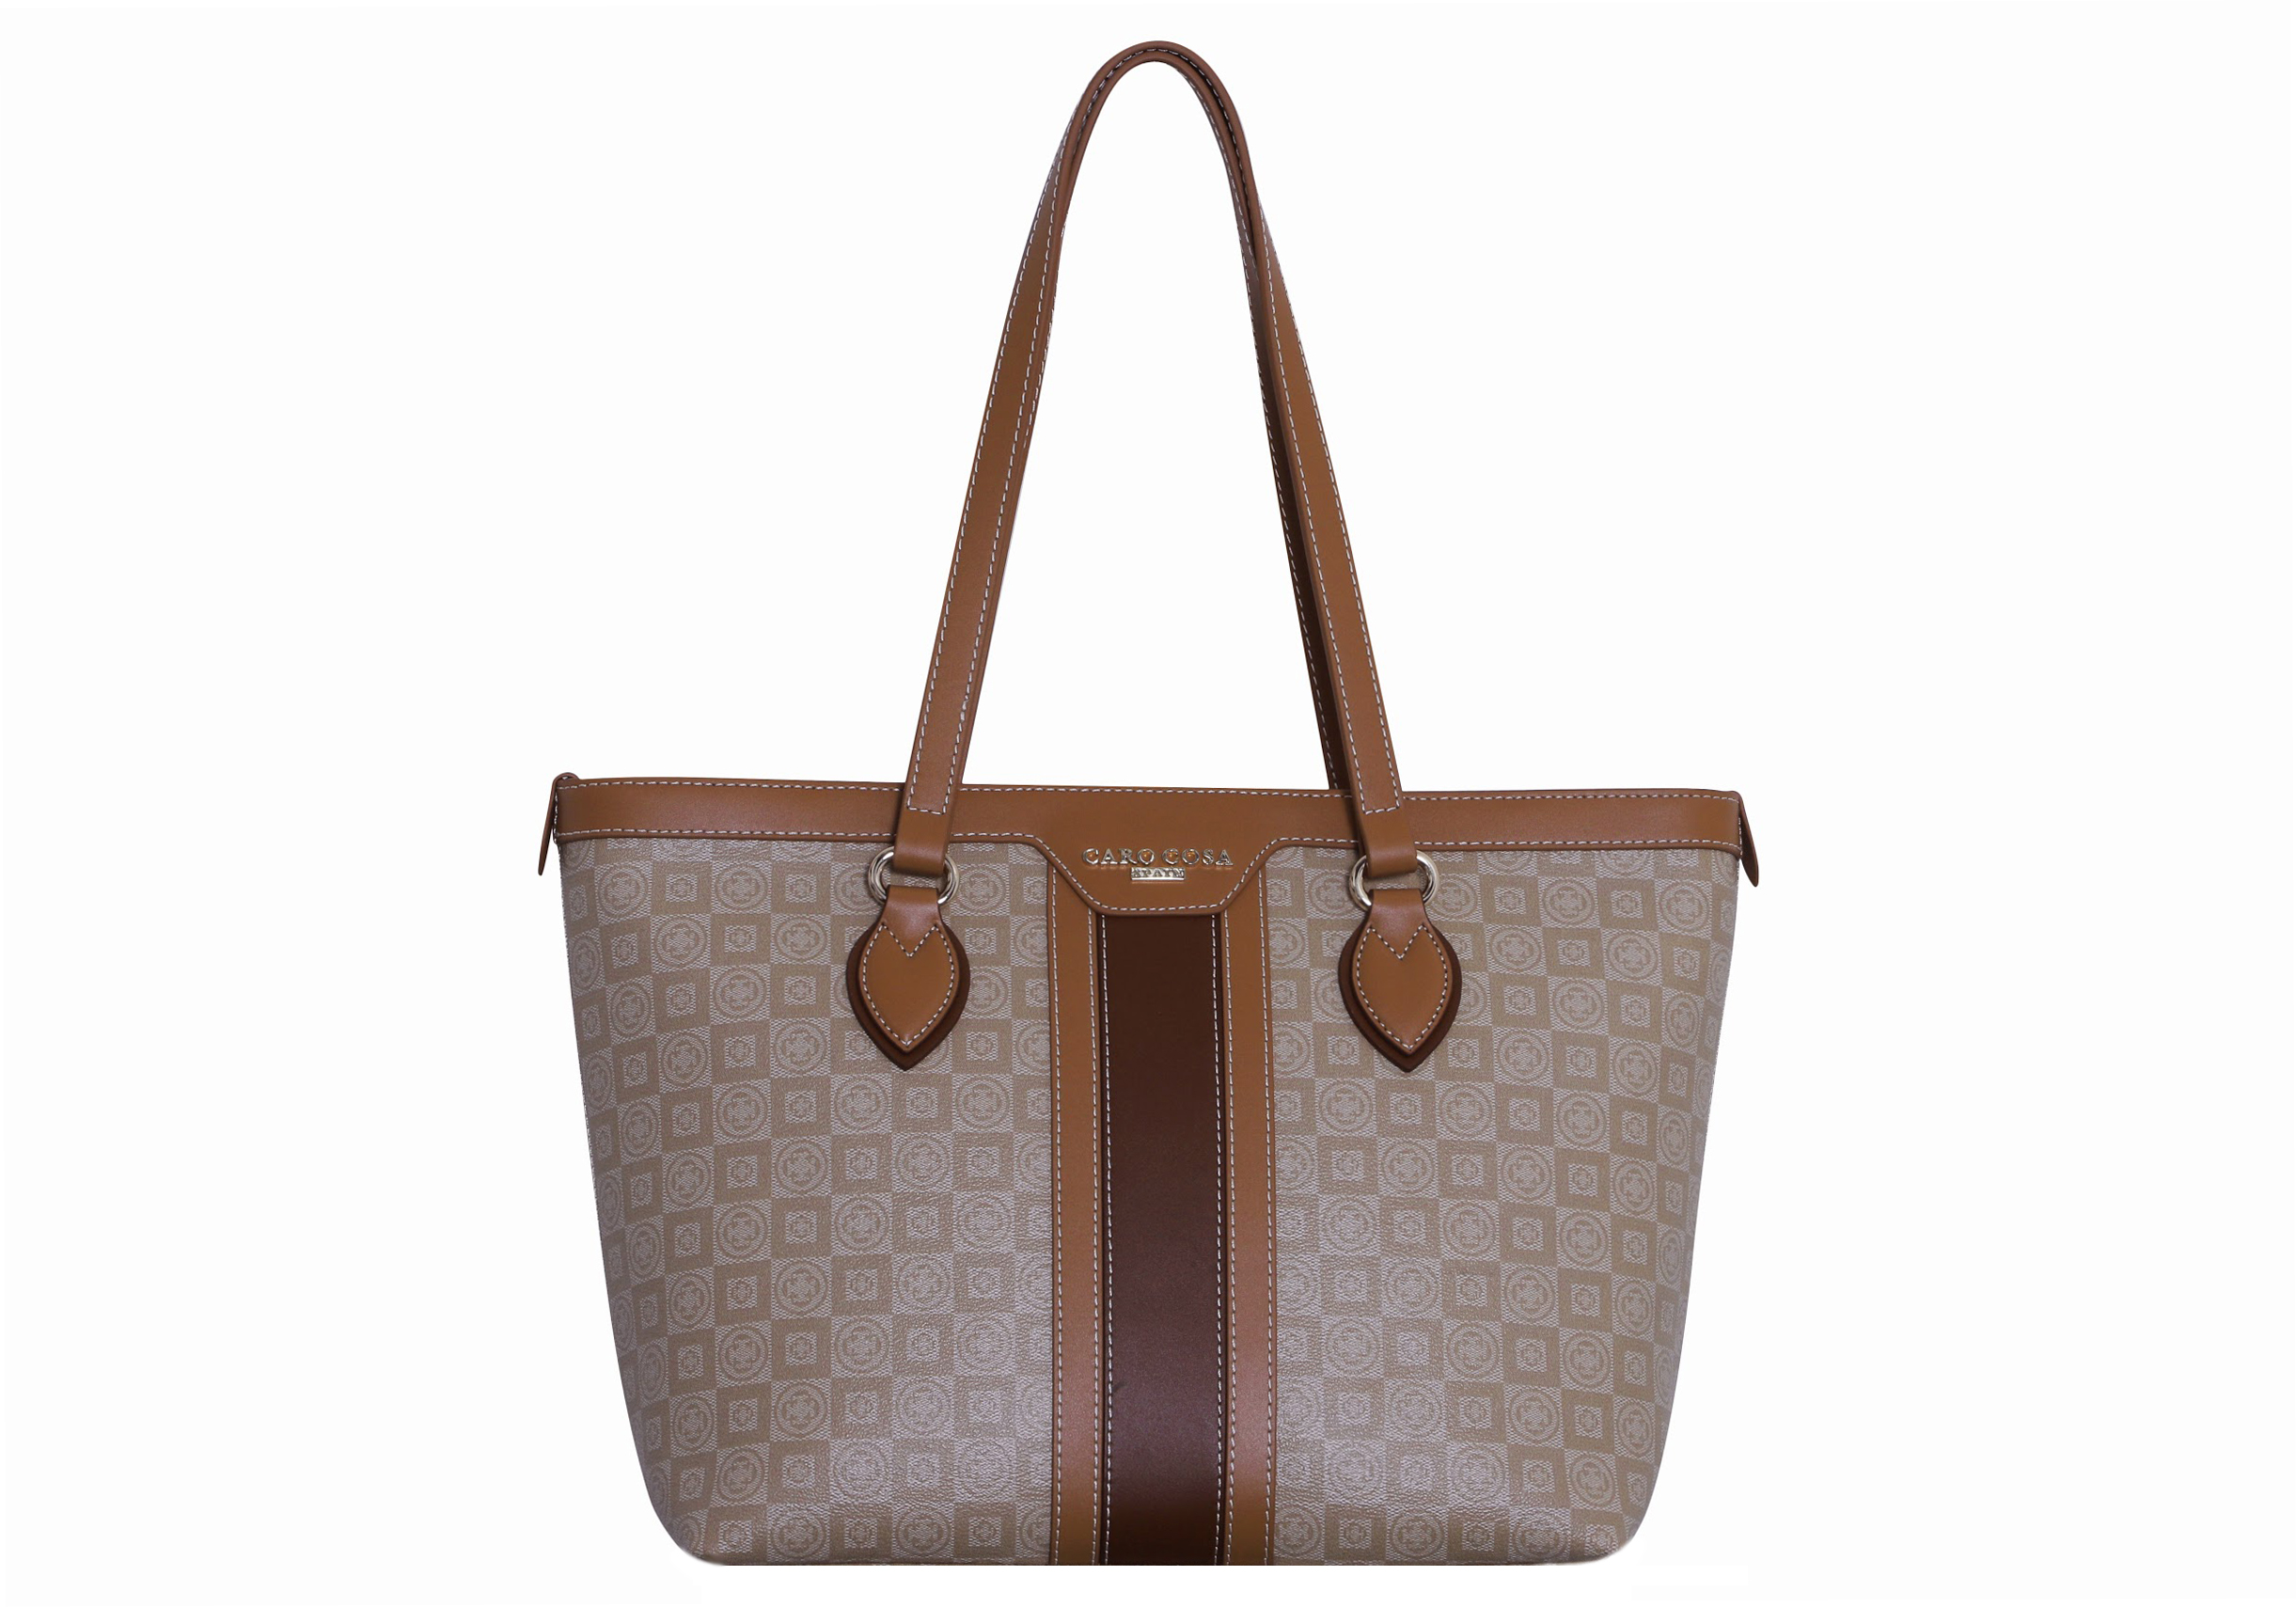 How To Choose Tote Bags For Women